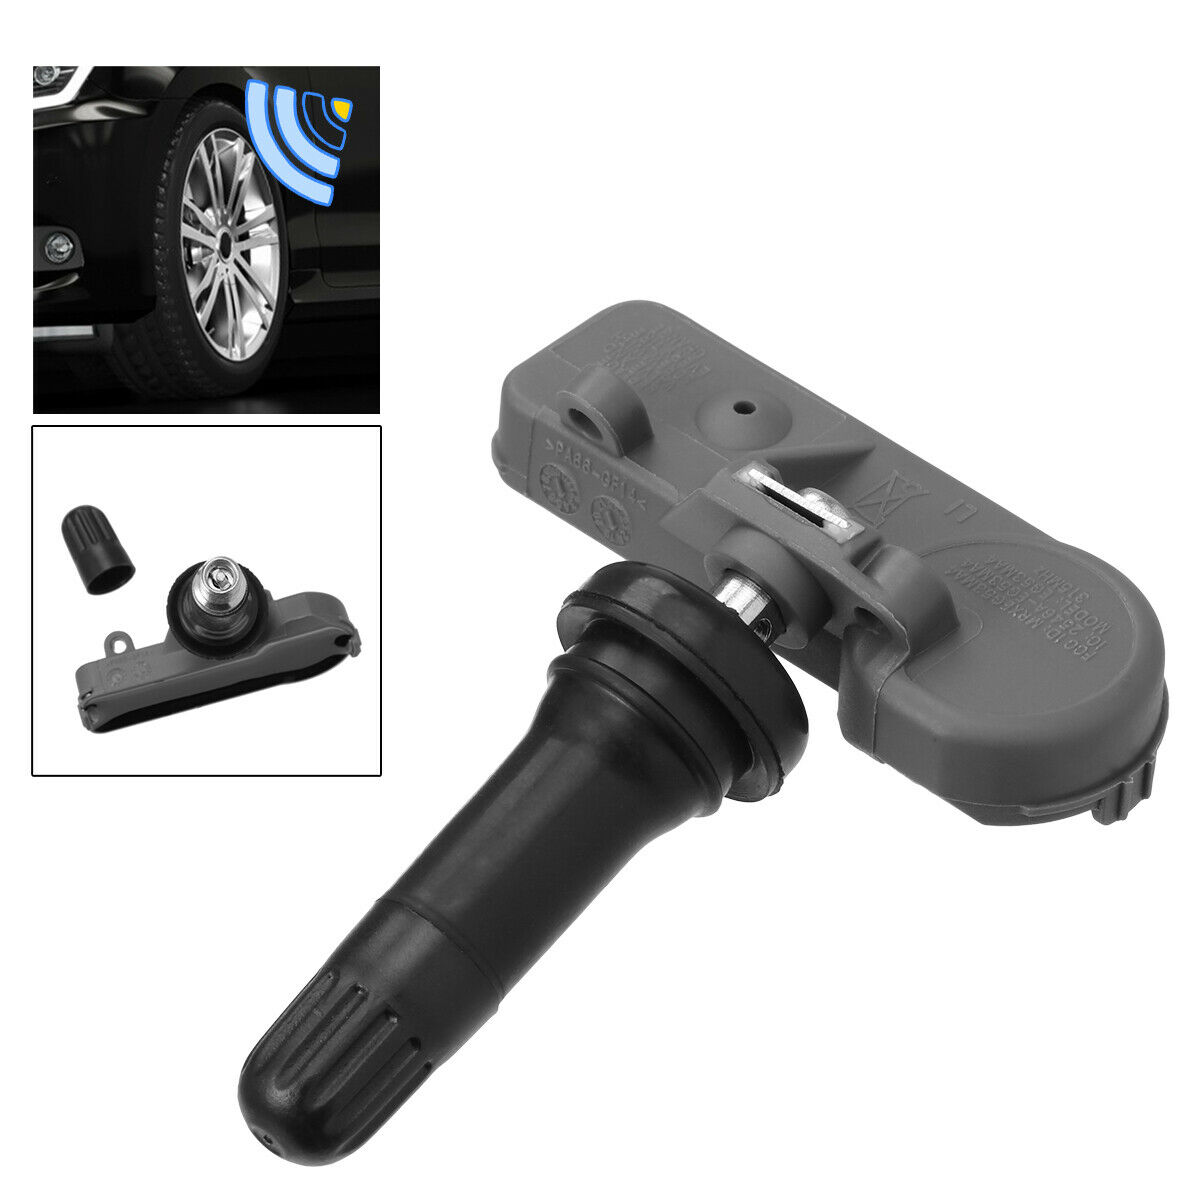 Details about  /4Pcs Tire Pressure Monitoring System Sensors TPMS For Chevy Cadillac GMC Saturn